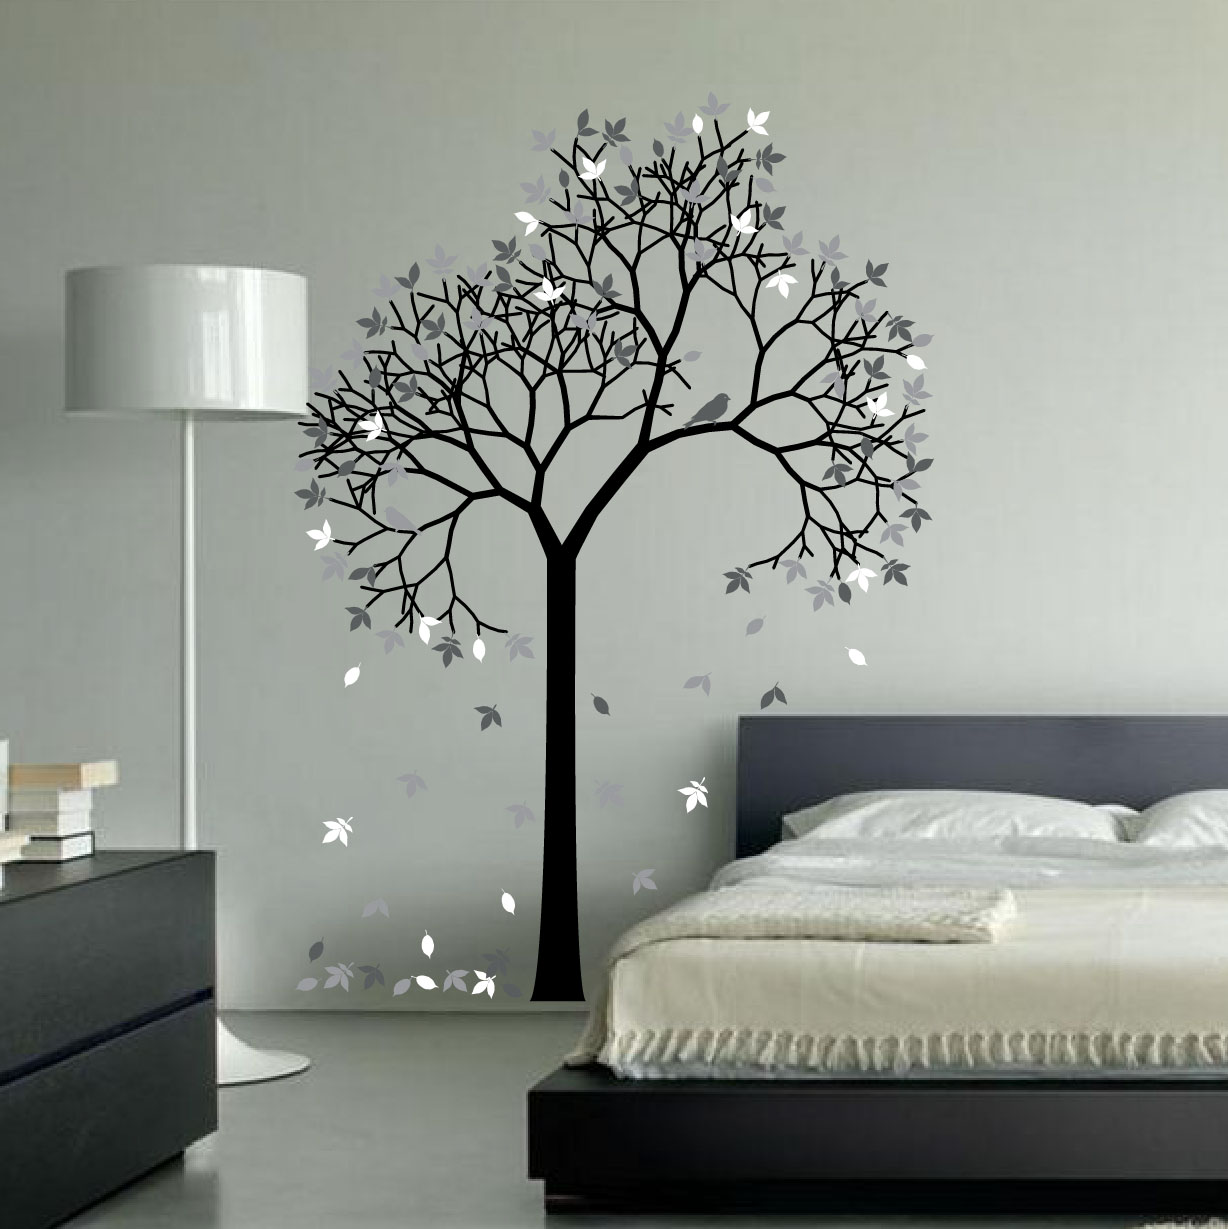 1267 Tree Wall Decal Bedroom